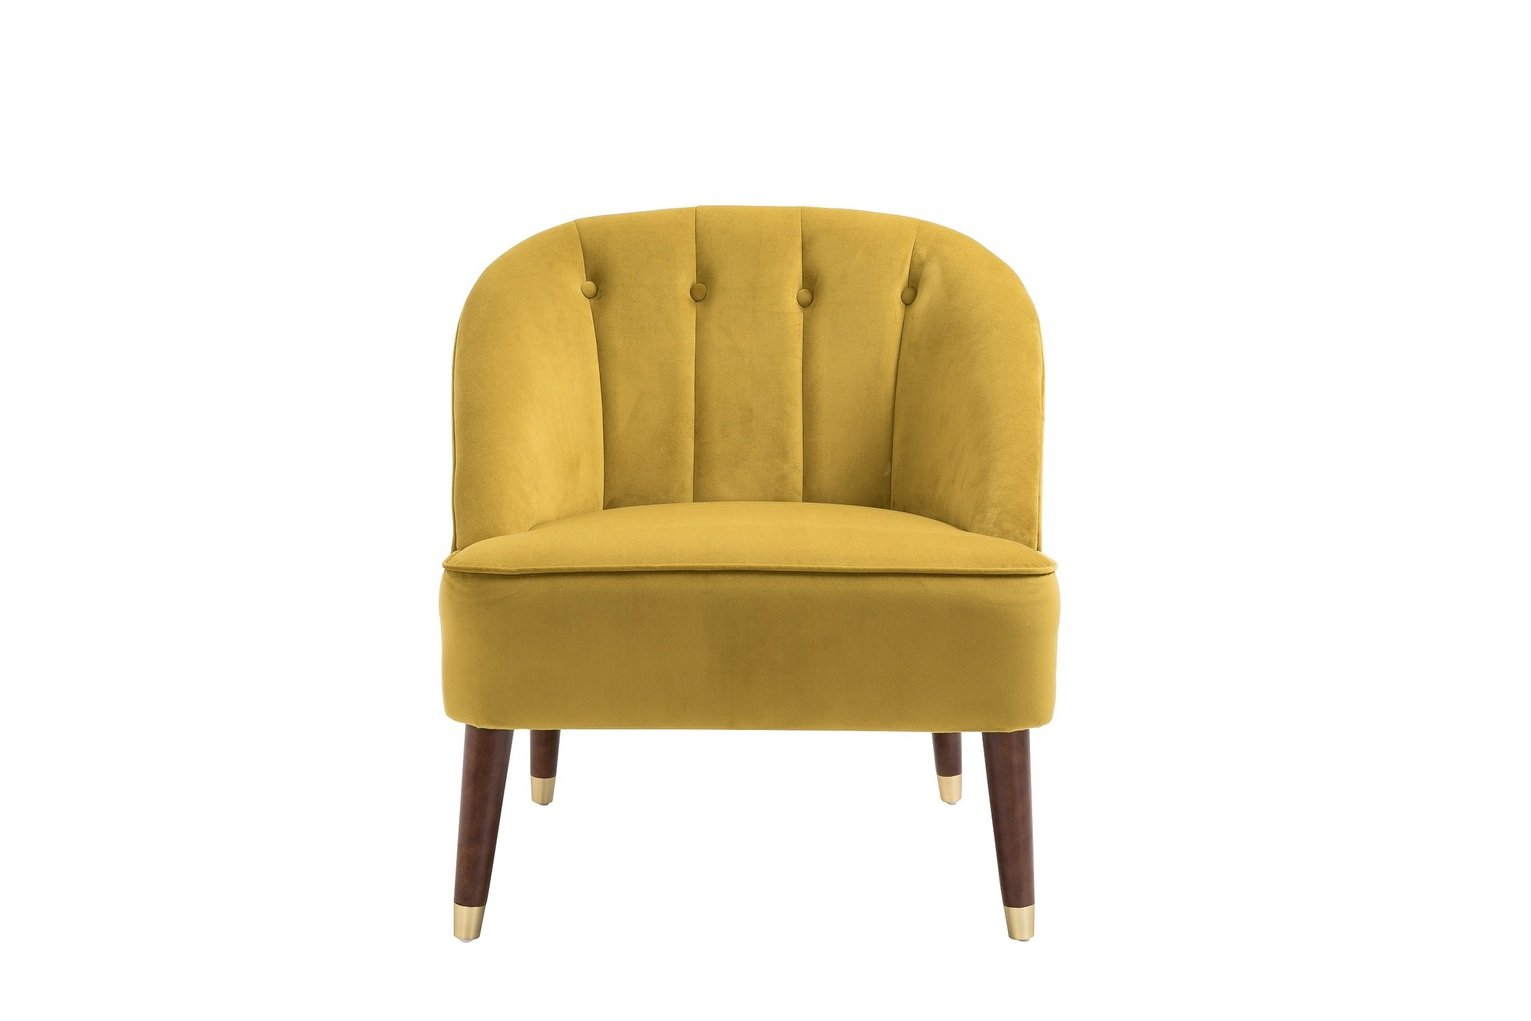 Birlea Alexa Fabric Accent Chair - Mustard